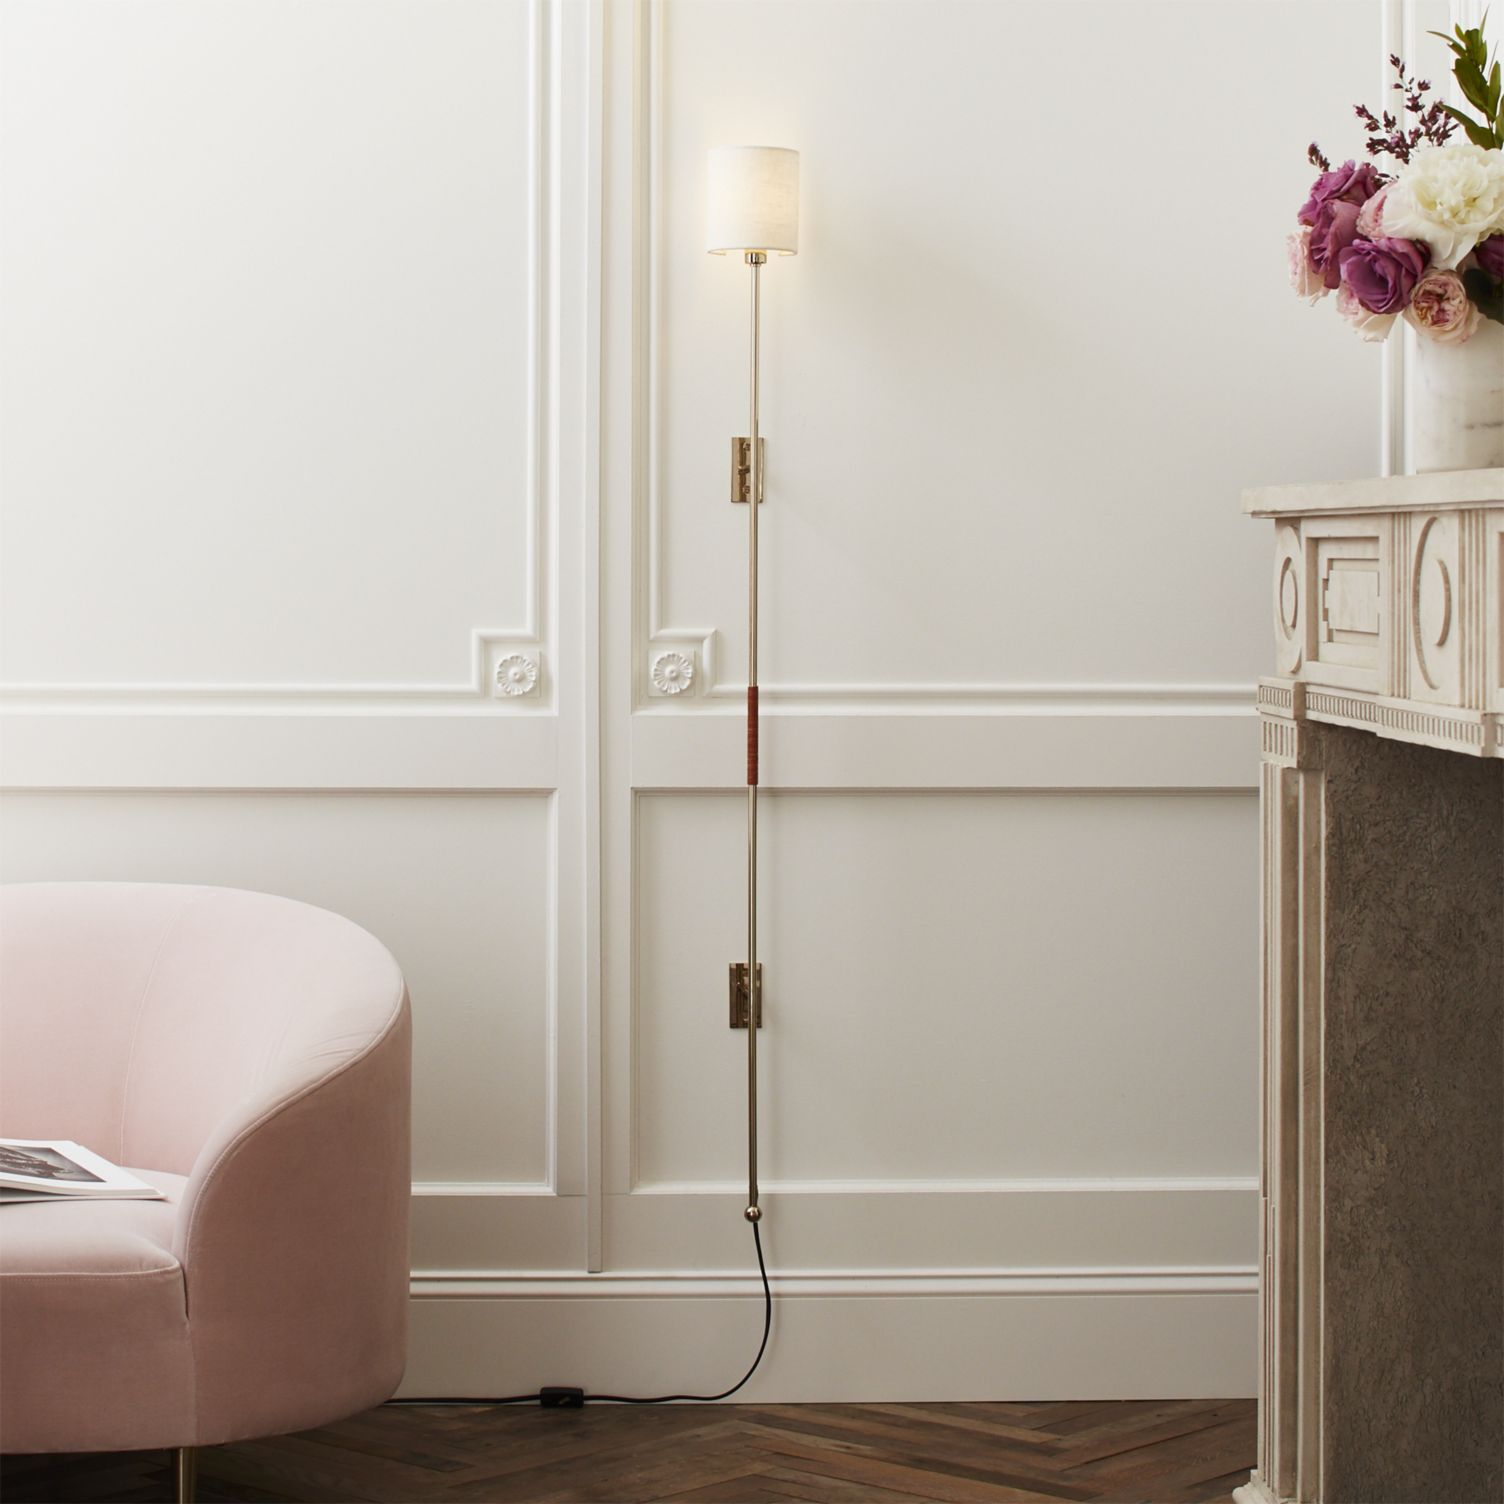 How chic is the leggero pole wall sconce above